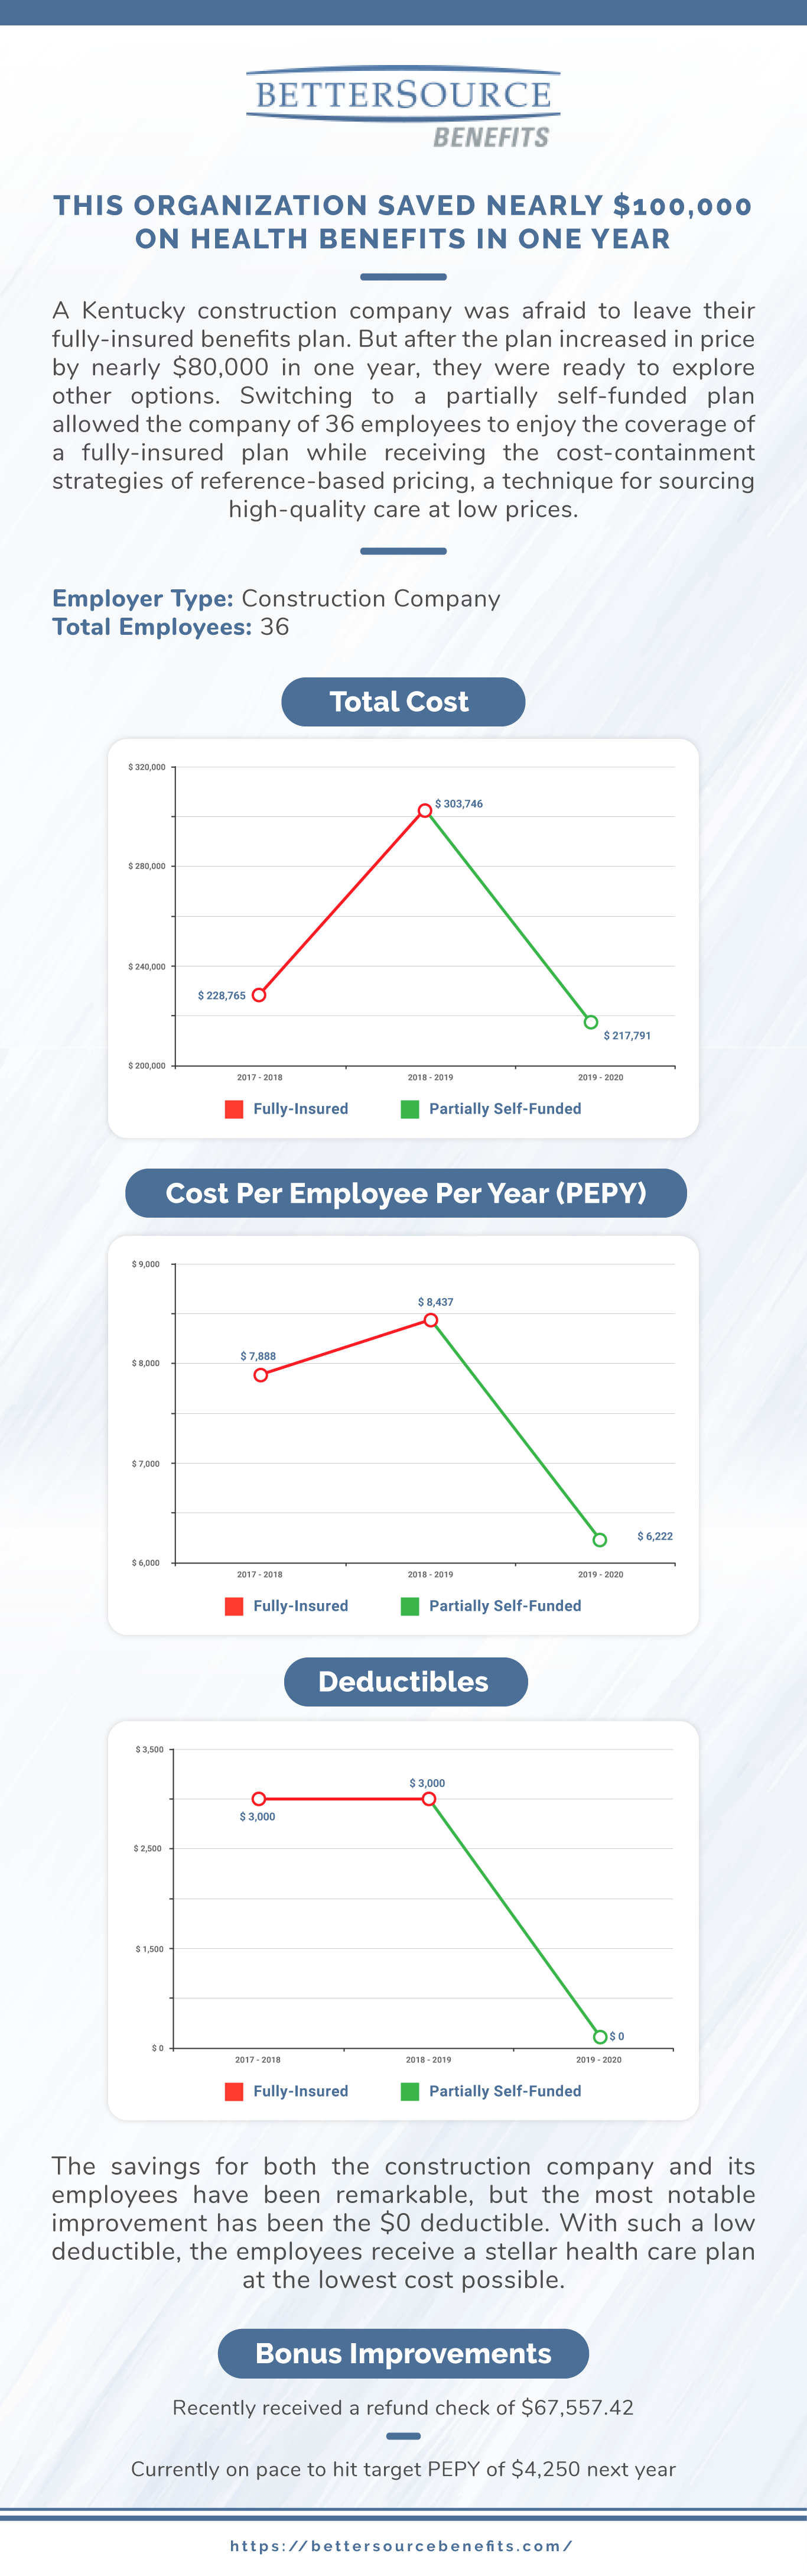 BetterSource Benefits Infographic